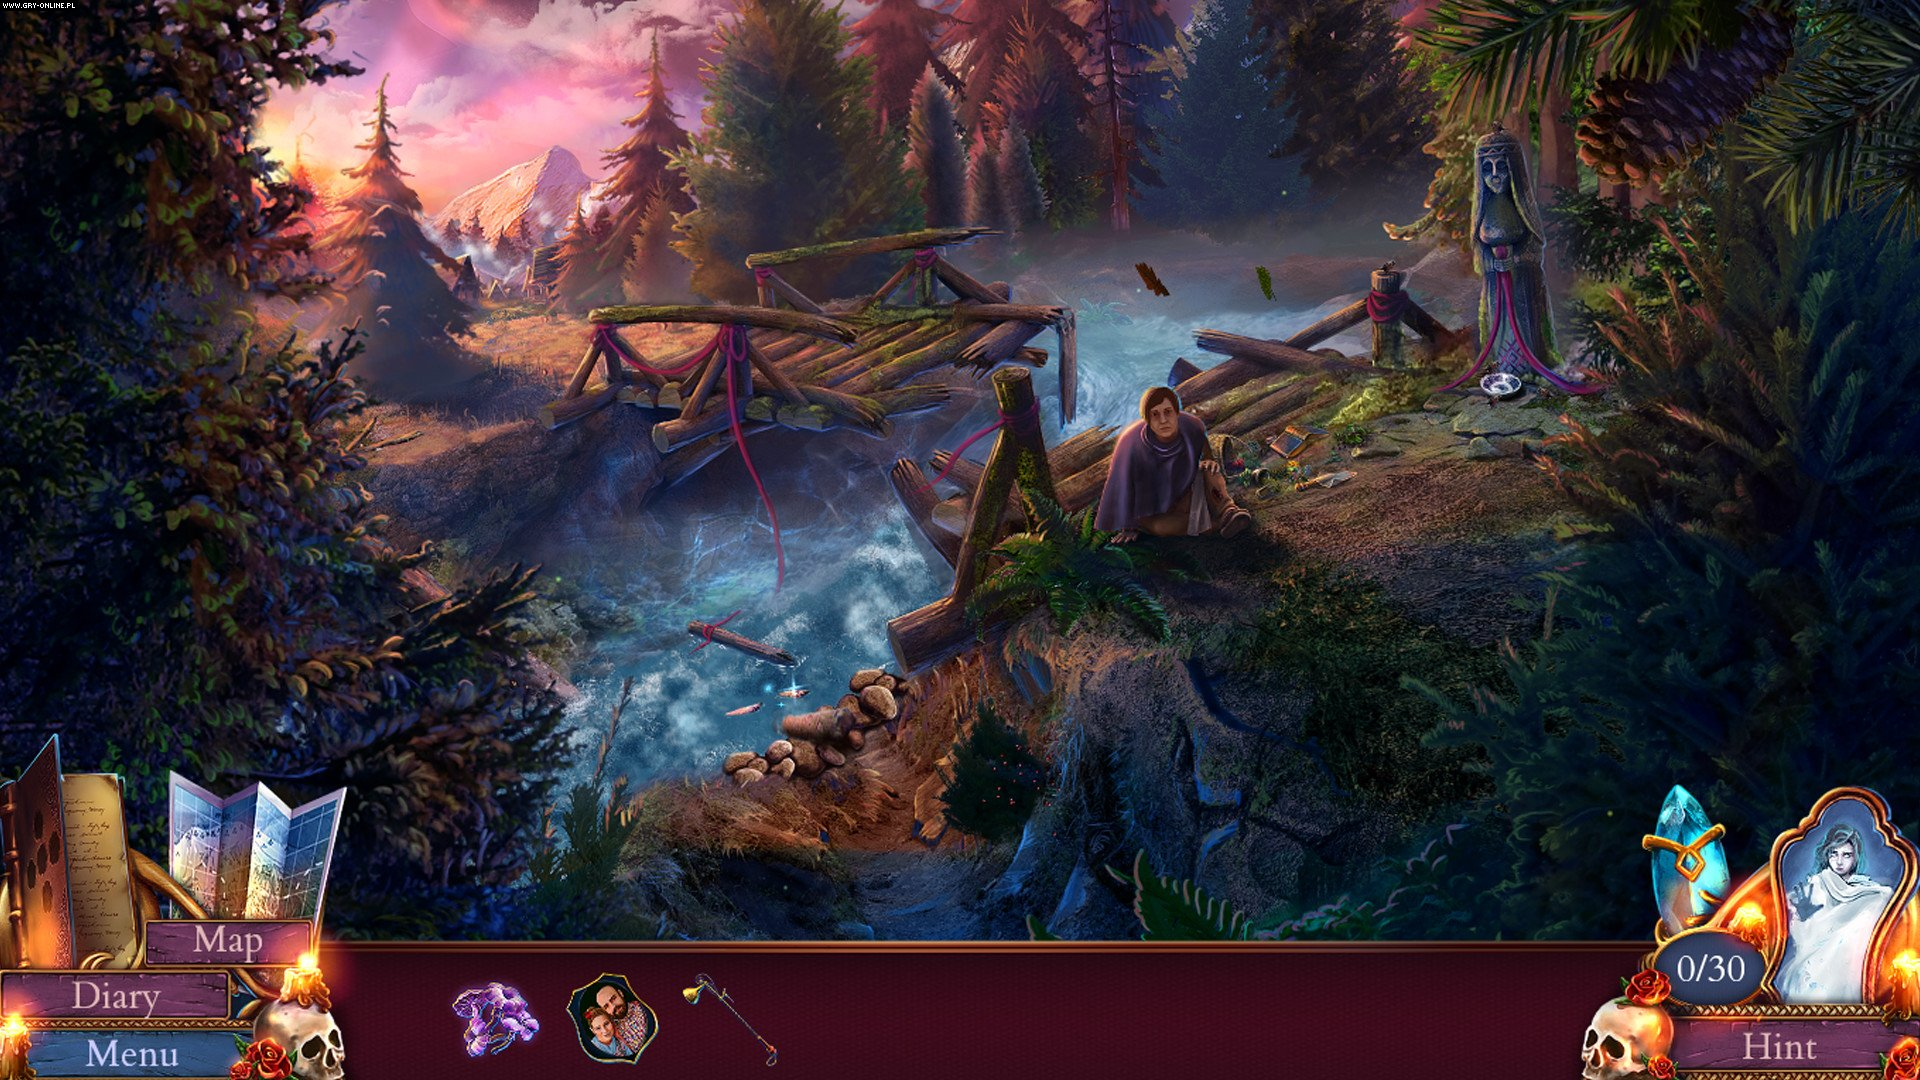 Eventide 2: The Sorcerer's Mirror PC, XONE, AND, iOS, WP Games Image 1/8, The House of Fables, Artifex Mundi